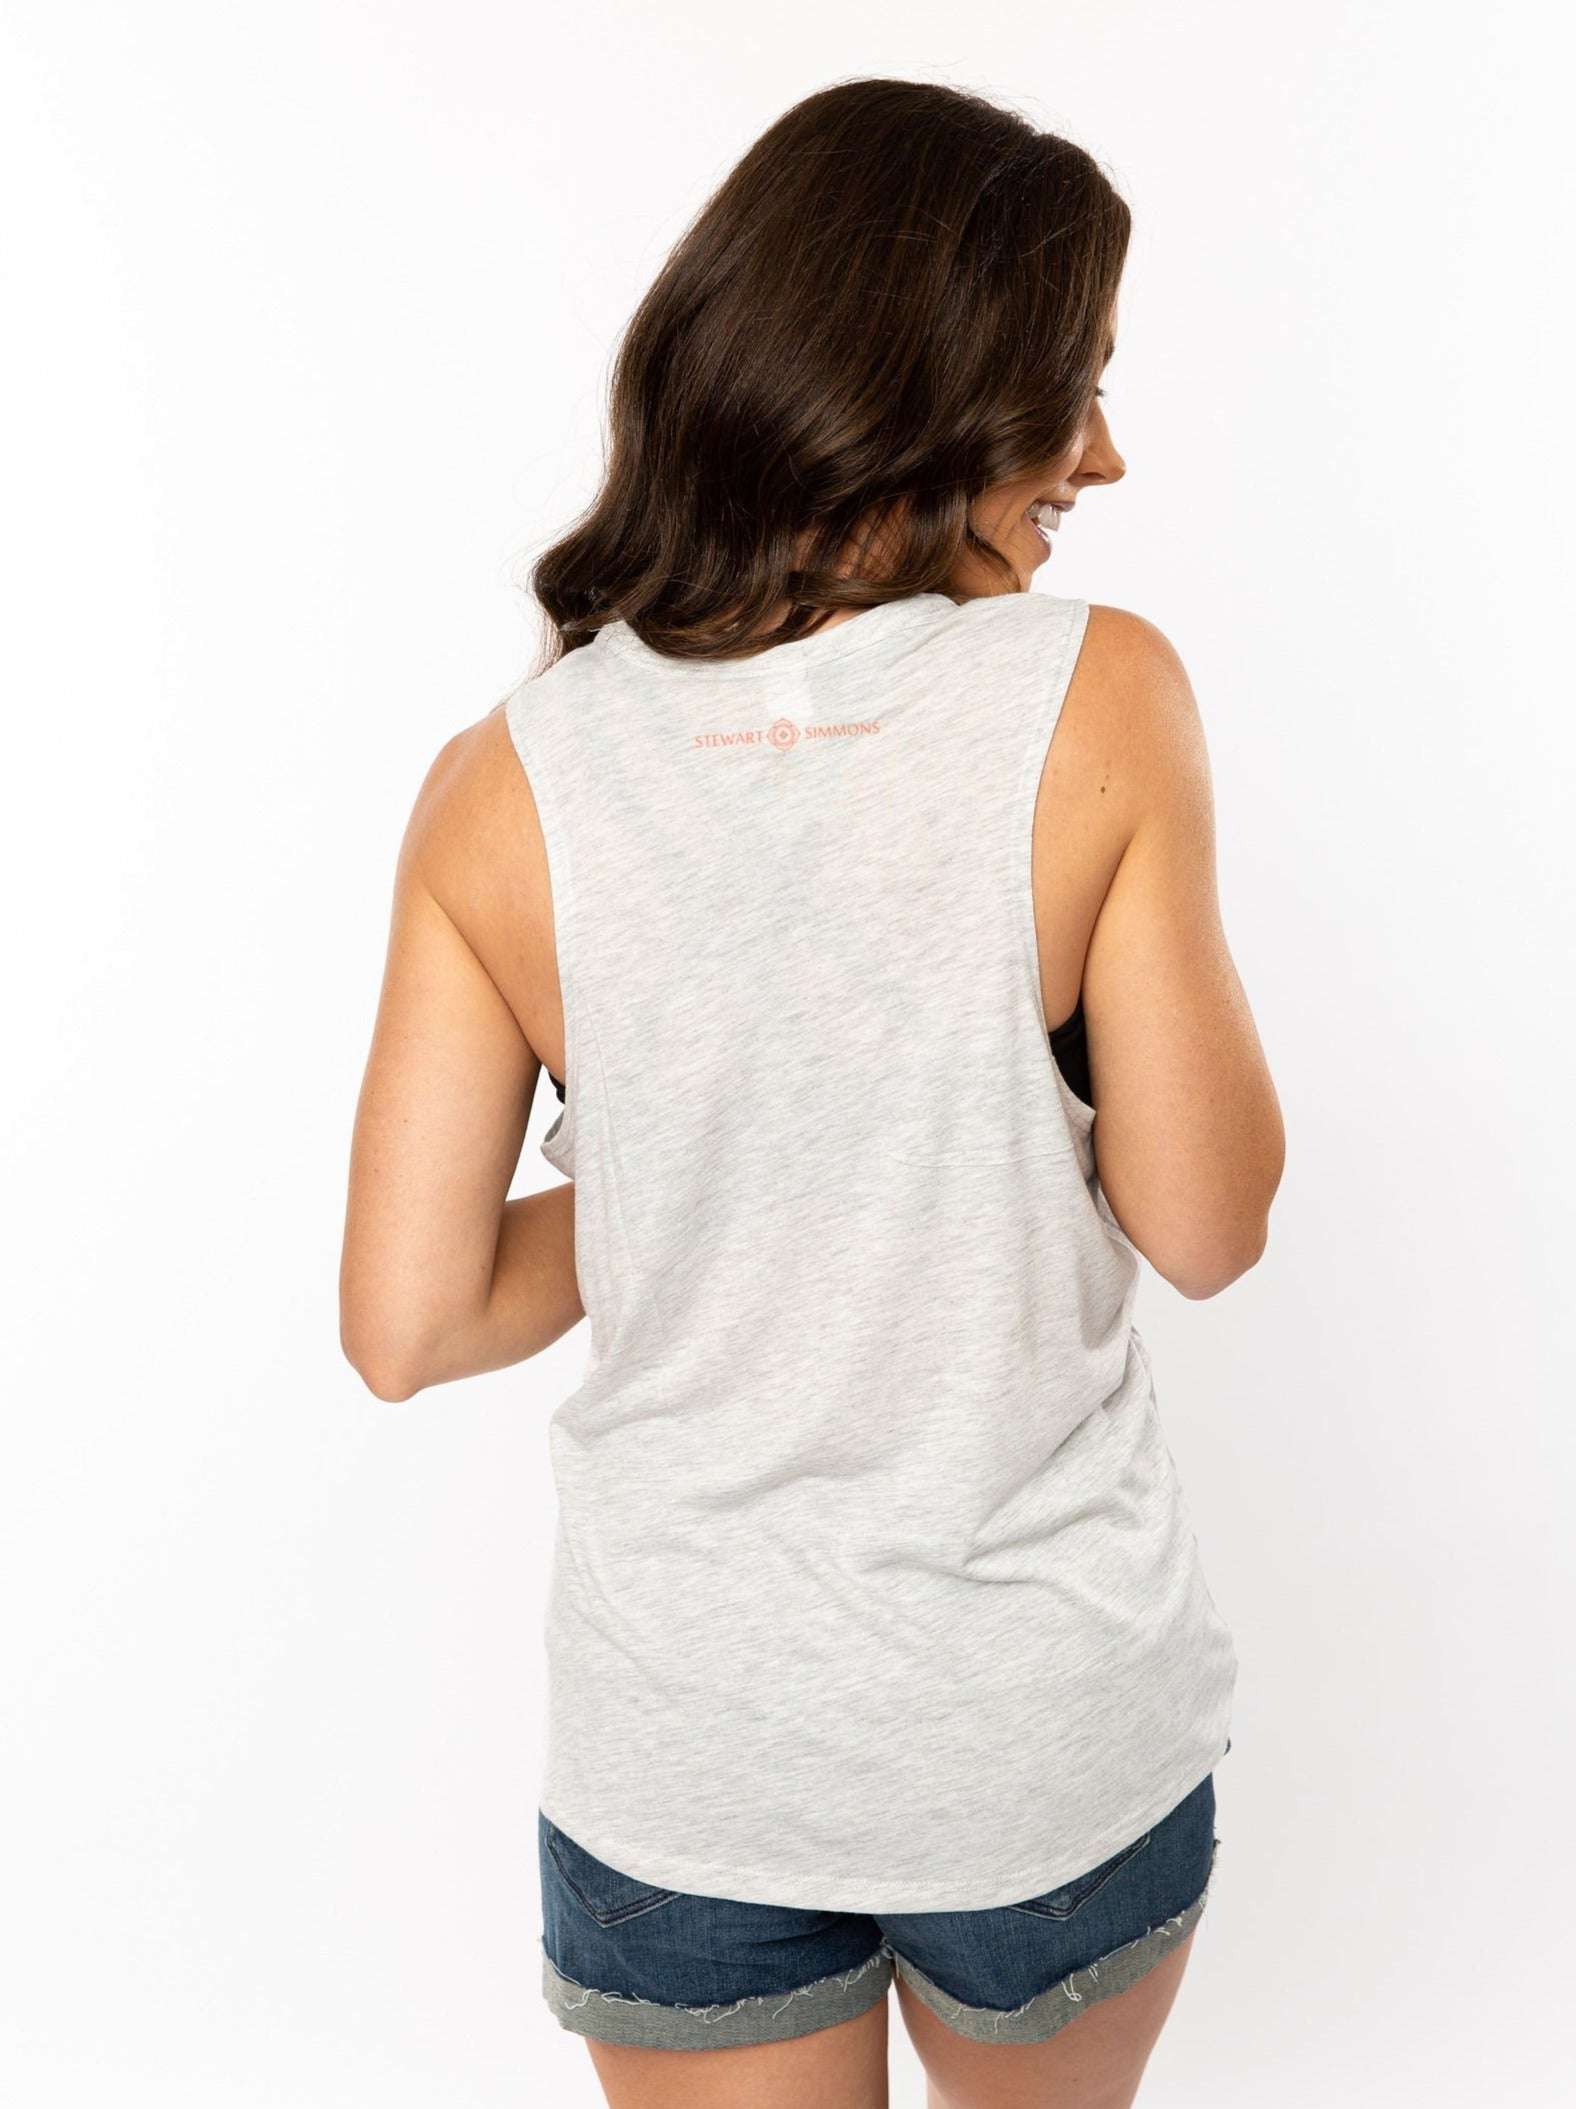 The Smokey Muscle Tank